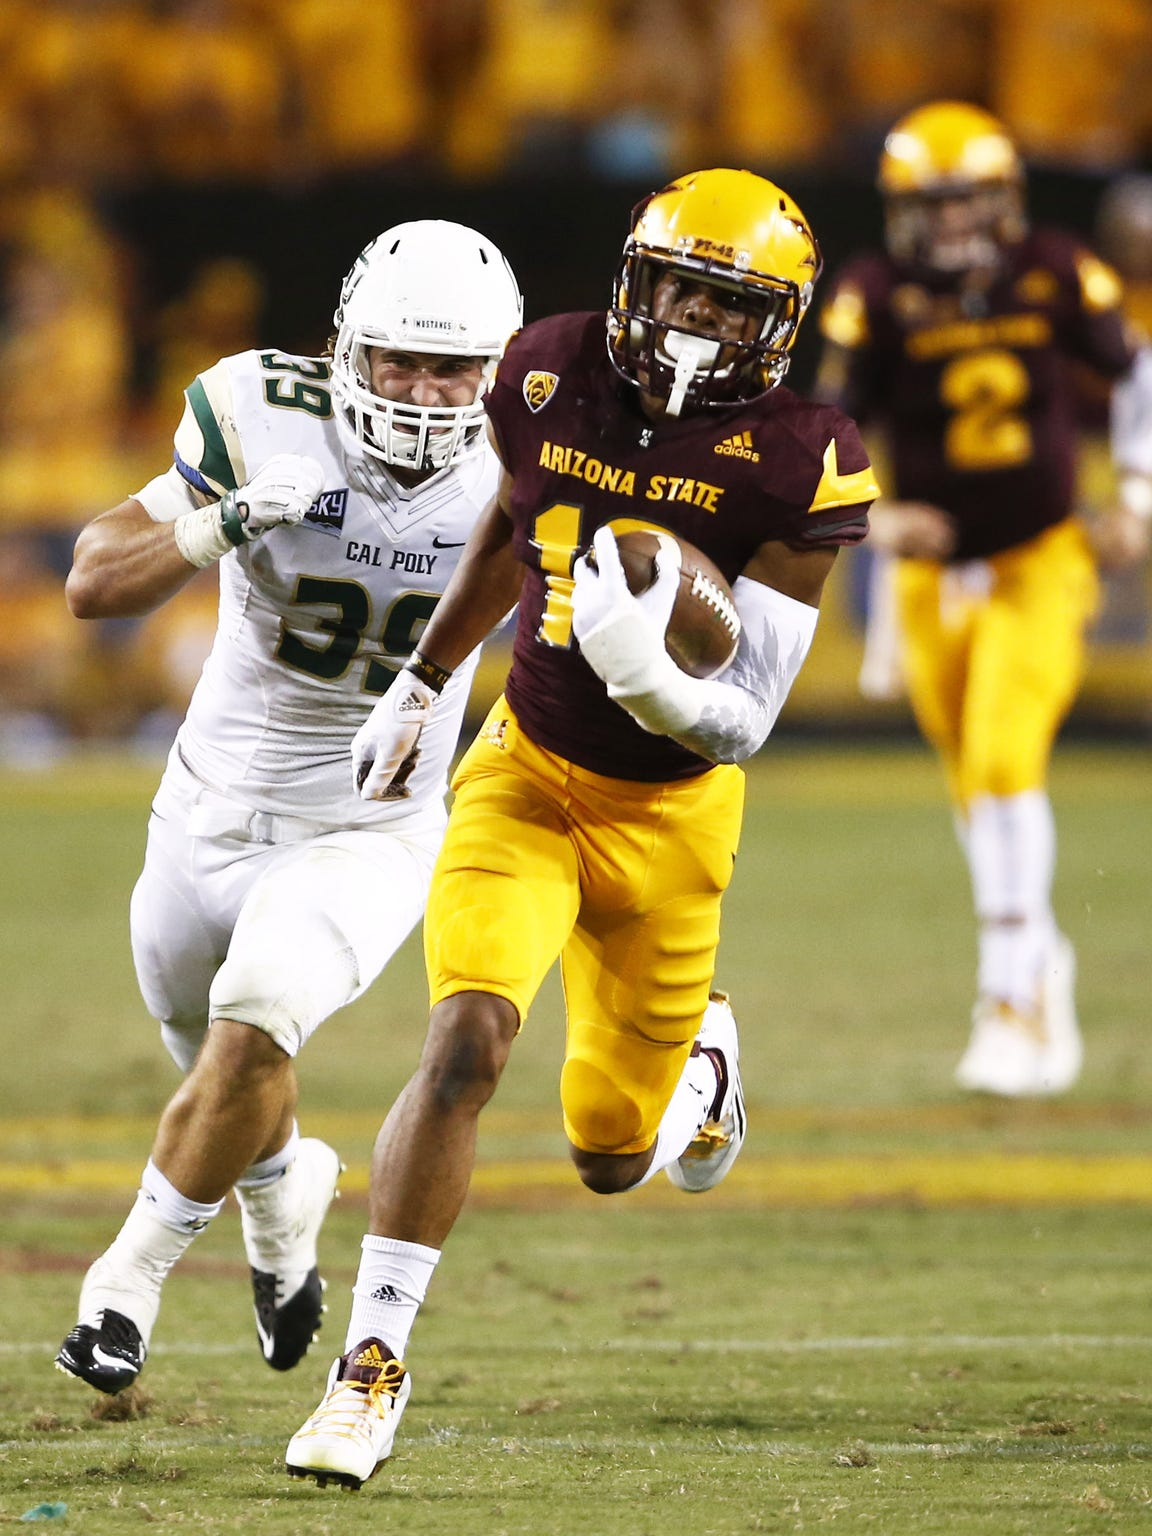 ASU's Tim White runs for 58-yards against Cal Poly at Sun Devil Stadium on Sep. 12, 2015 in Tempe.